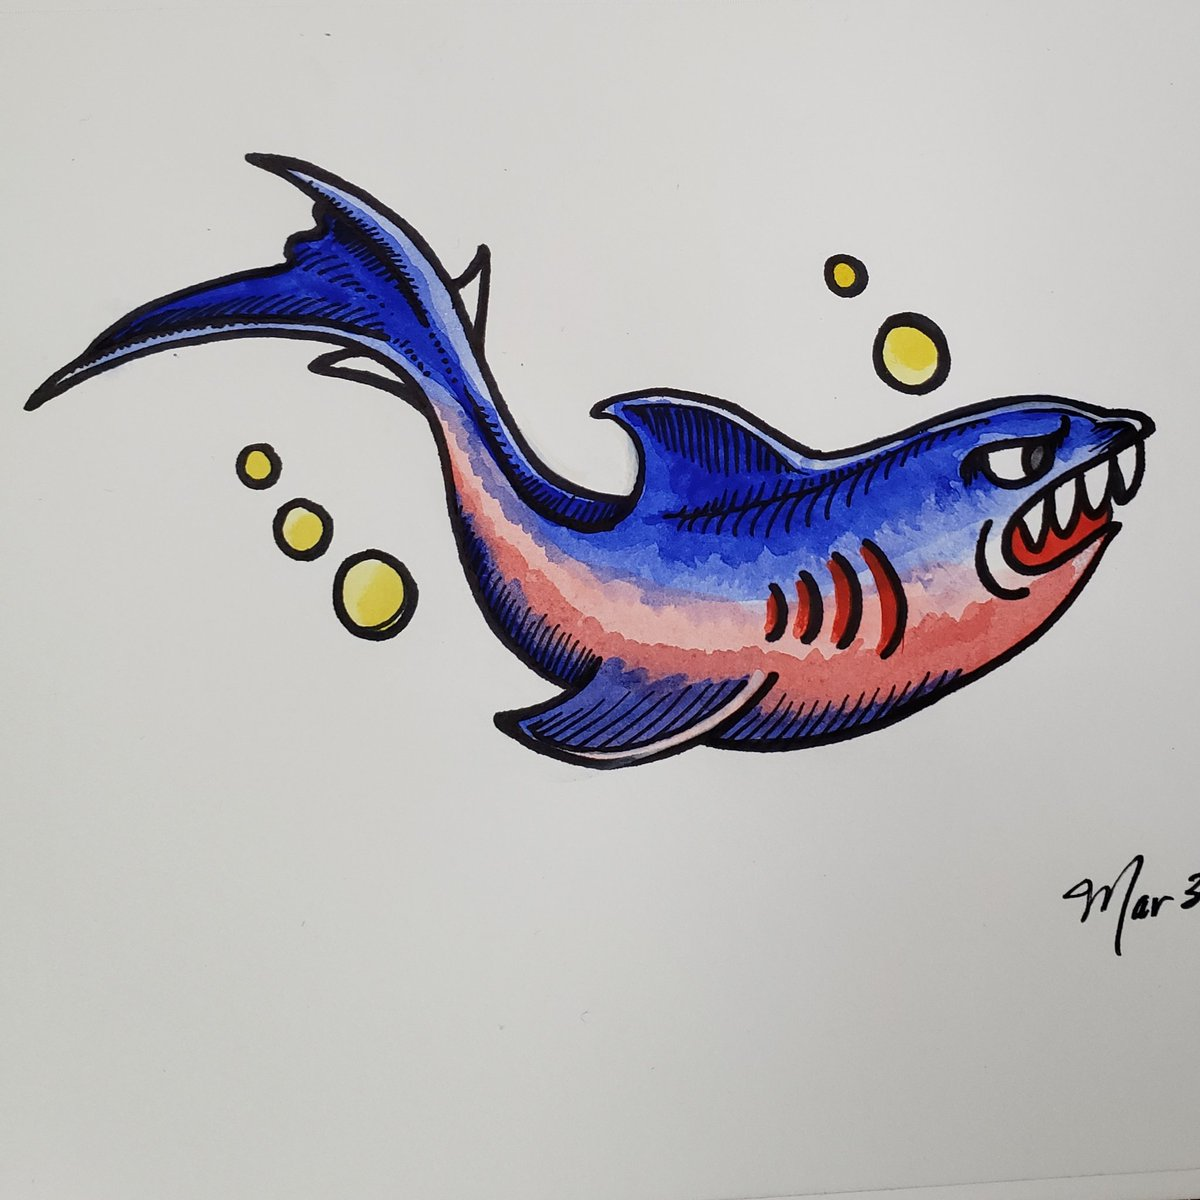 Elisa Shigehiro Art On Twitter More Studies Sailor Jerry Shark Flash This One Is Giving Me Cuphead Vibes Sailorjerryflash Practice Studies Elisashigehiro Elisashigehiroart Shark Ink Watercolor Https T Co Yporkmu0pk